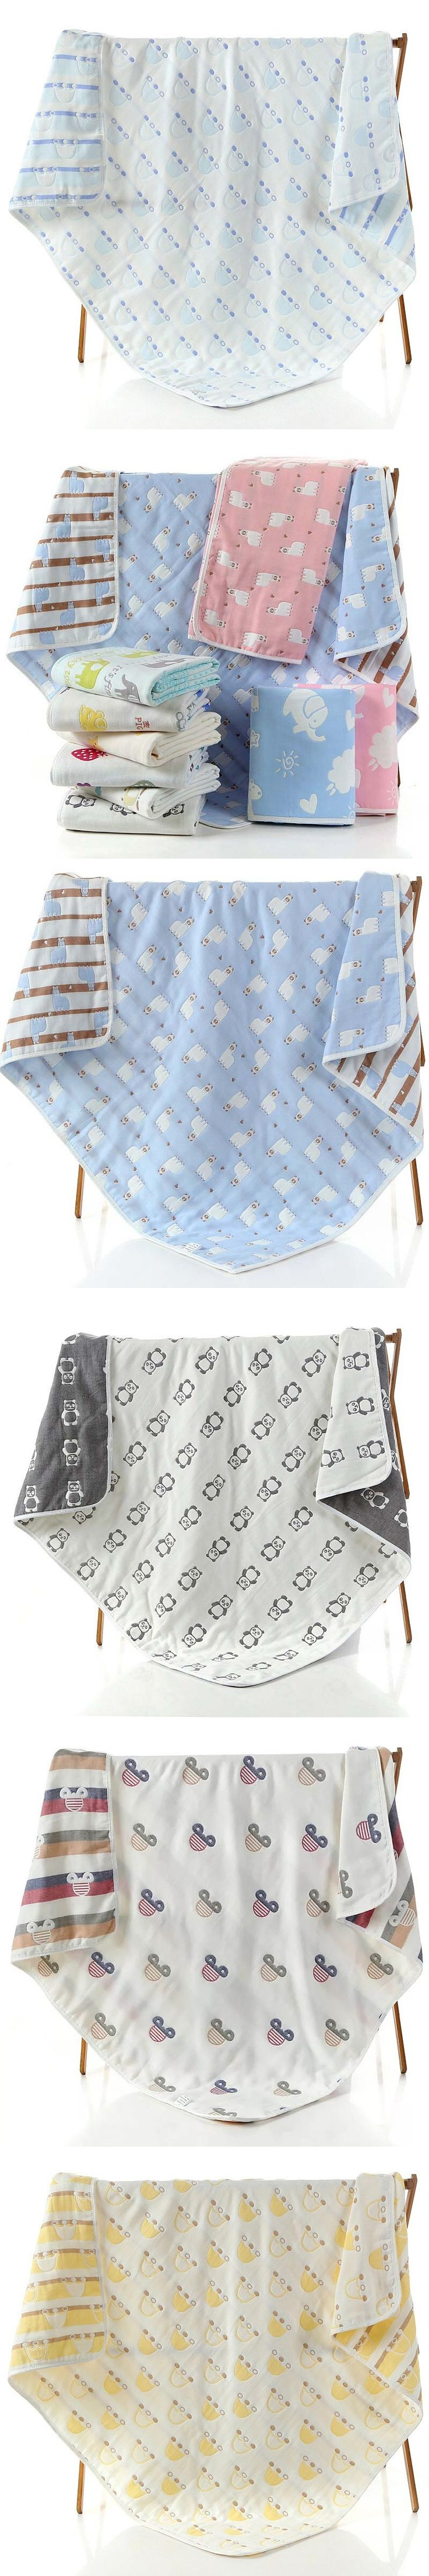 Summitkids 80X80CM Baby Nursing Blanket Coral Fleece Portable Blankie Swaddling Wrap for Strolling Soft Winter Baby Bedding